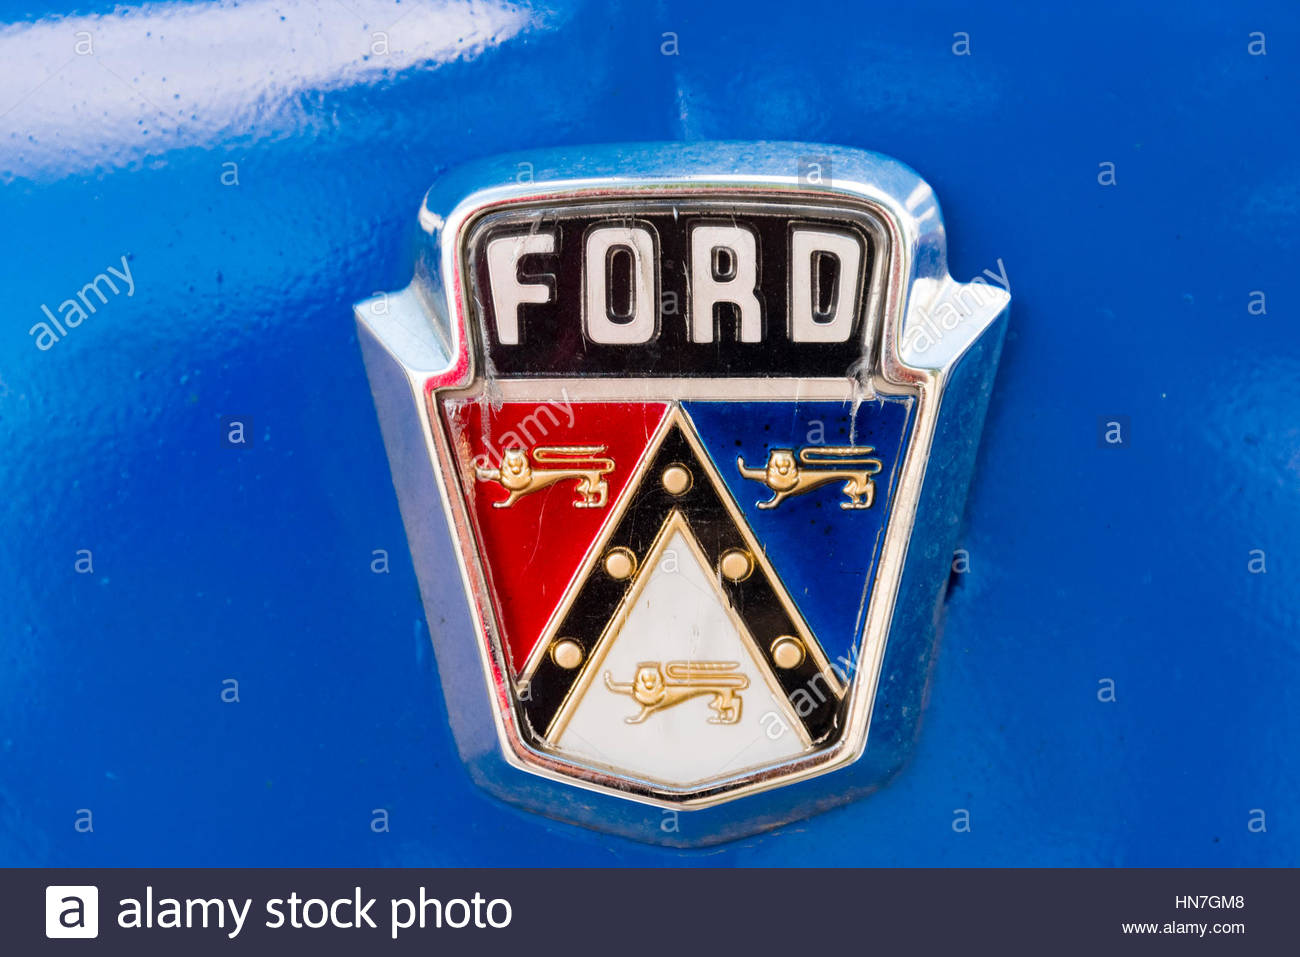 Ford Brand Name Logo In Old Classic American Car Still Running In